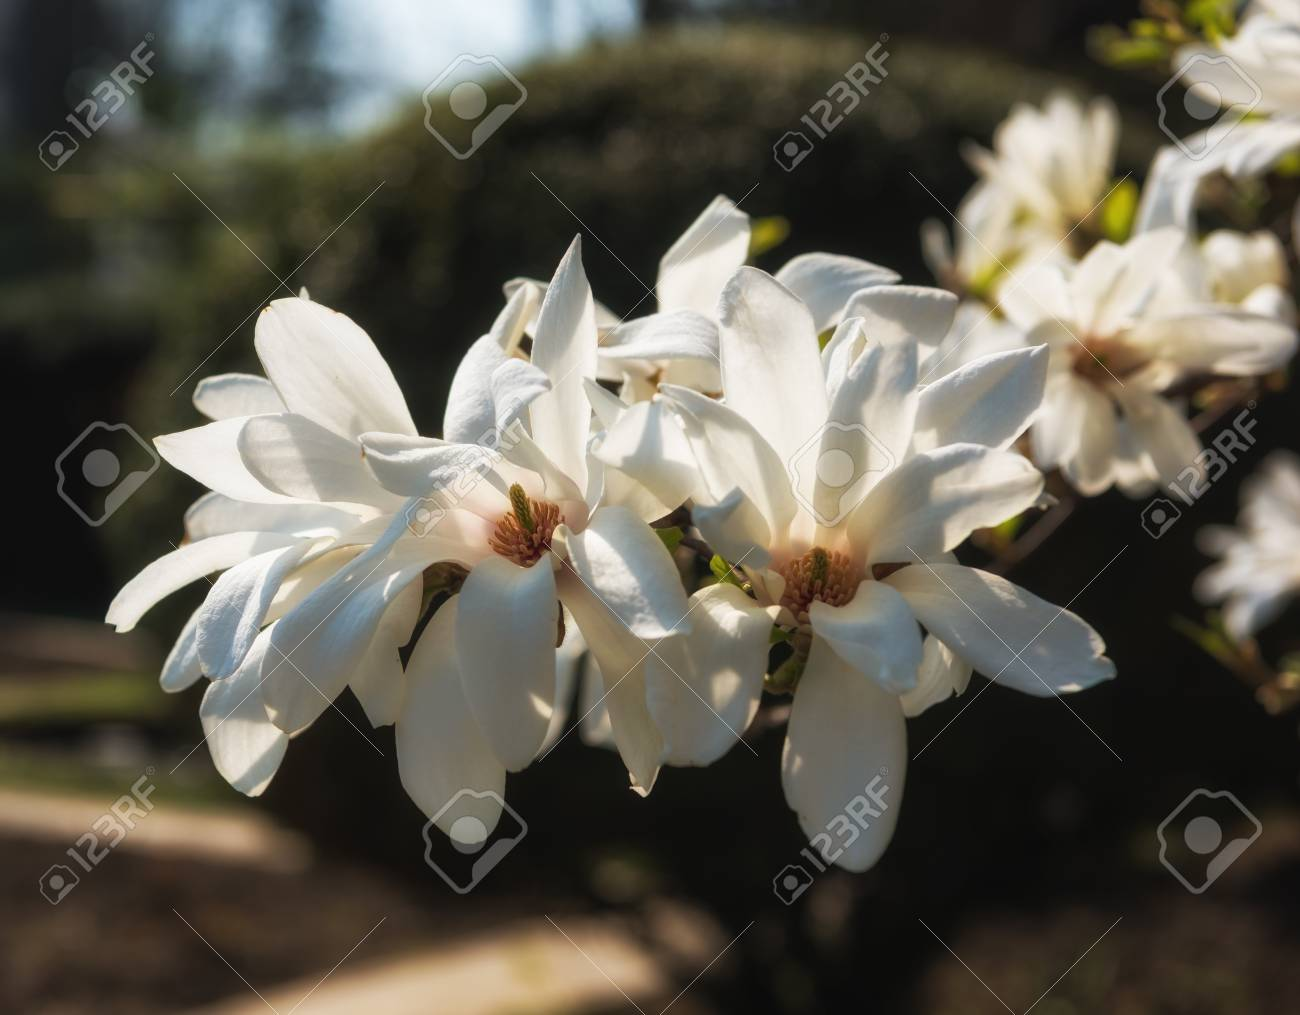 White magnolia flowers in the sunlight blooming magnolia tree stock photo white magnolia flowers in the sunlight blooming magnolia tree with white flowersgnolia kobus mightylinksfo